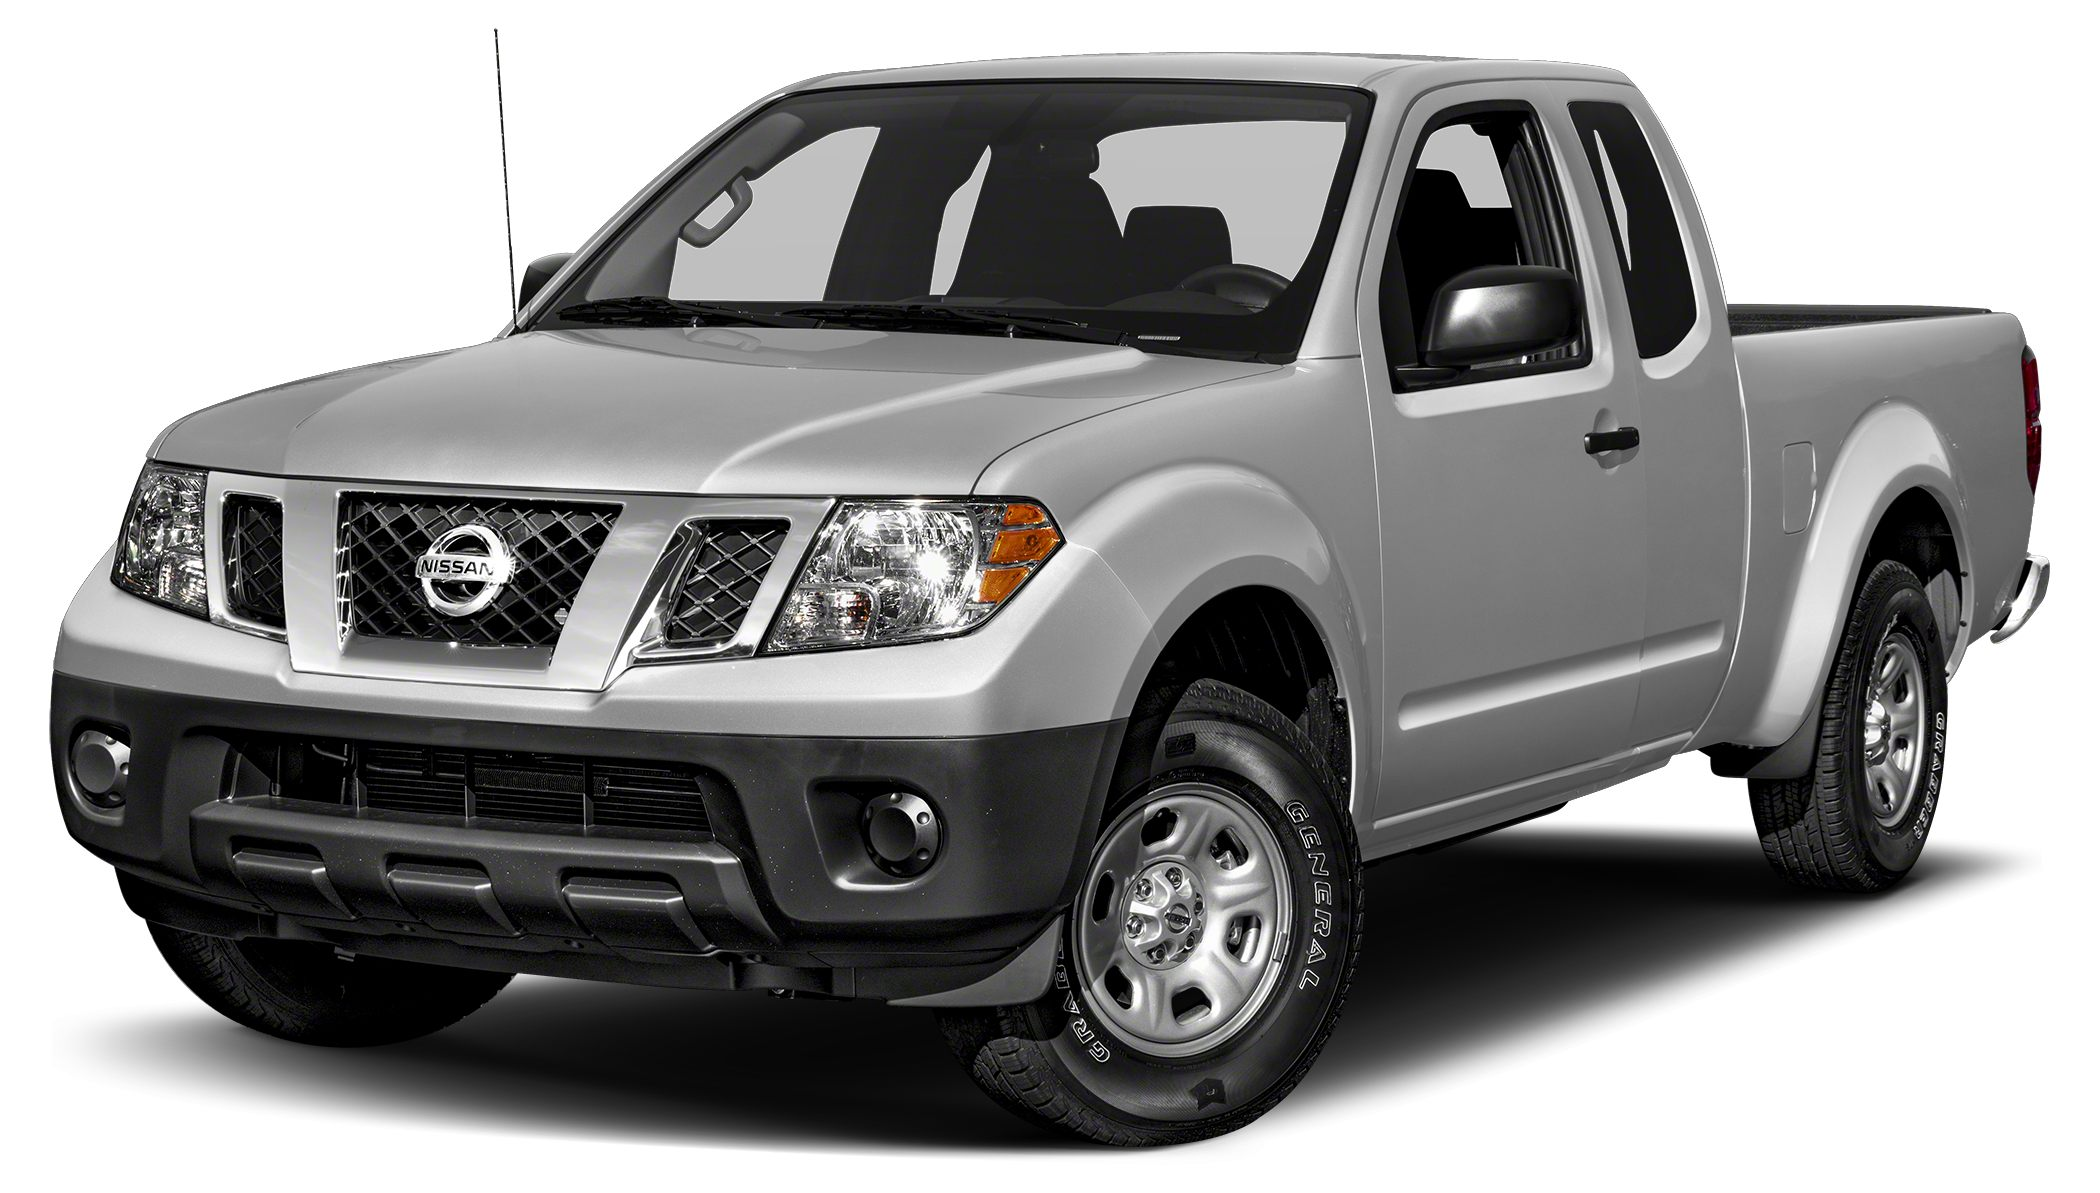 2015 Nissan Frontier S WE SELL OUR VEHICLES AT WHOLESALE PRICES AND STAND BEHIND OUR CARS  CO